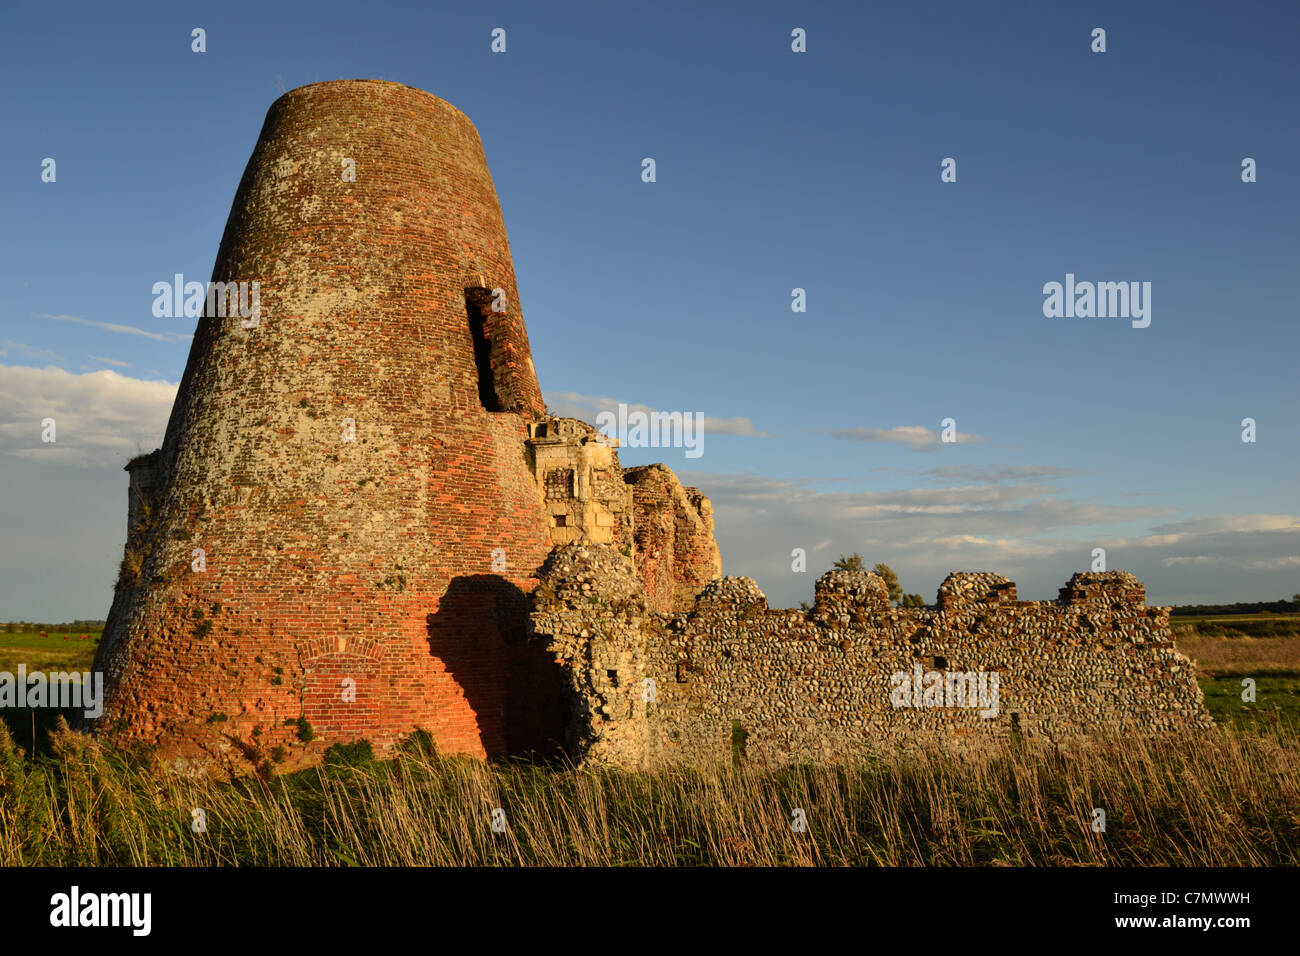 Ruins of St Benets Abbey and windmill beside the River Bure on the Norfolk Broads, lit by warm evening light Stock Photo